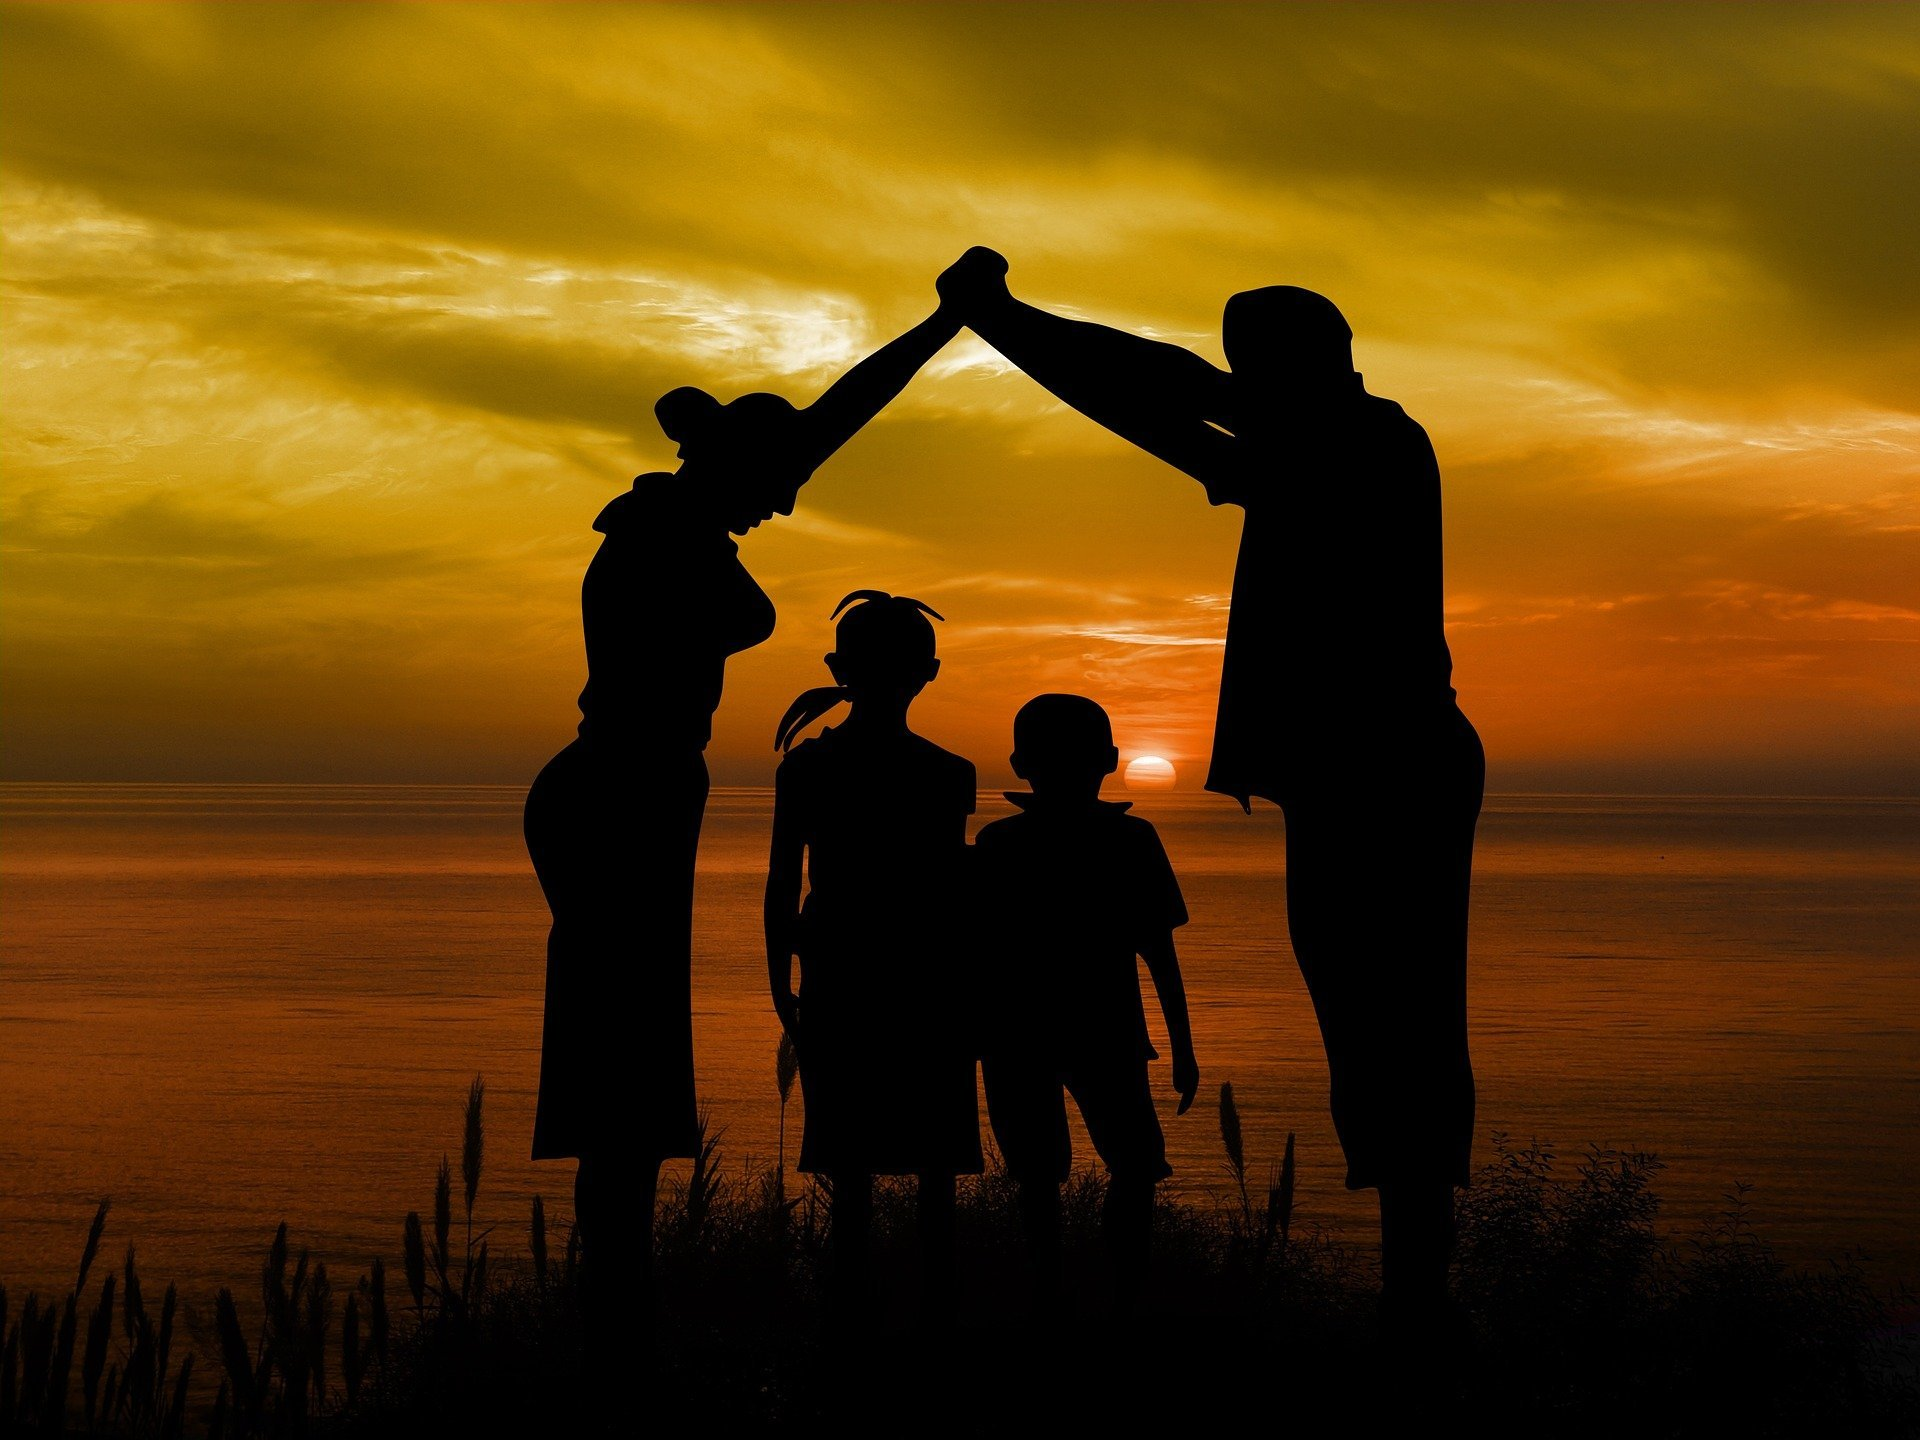 A silhouette of a family during sunset | Source: Pixabay